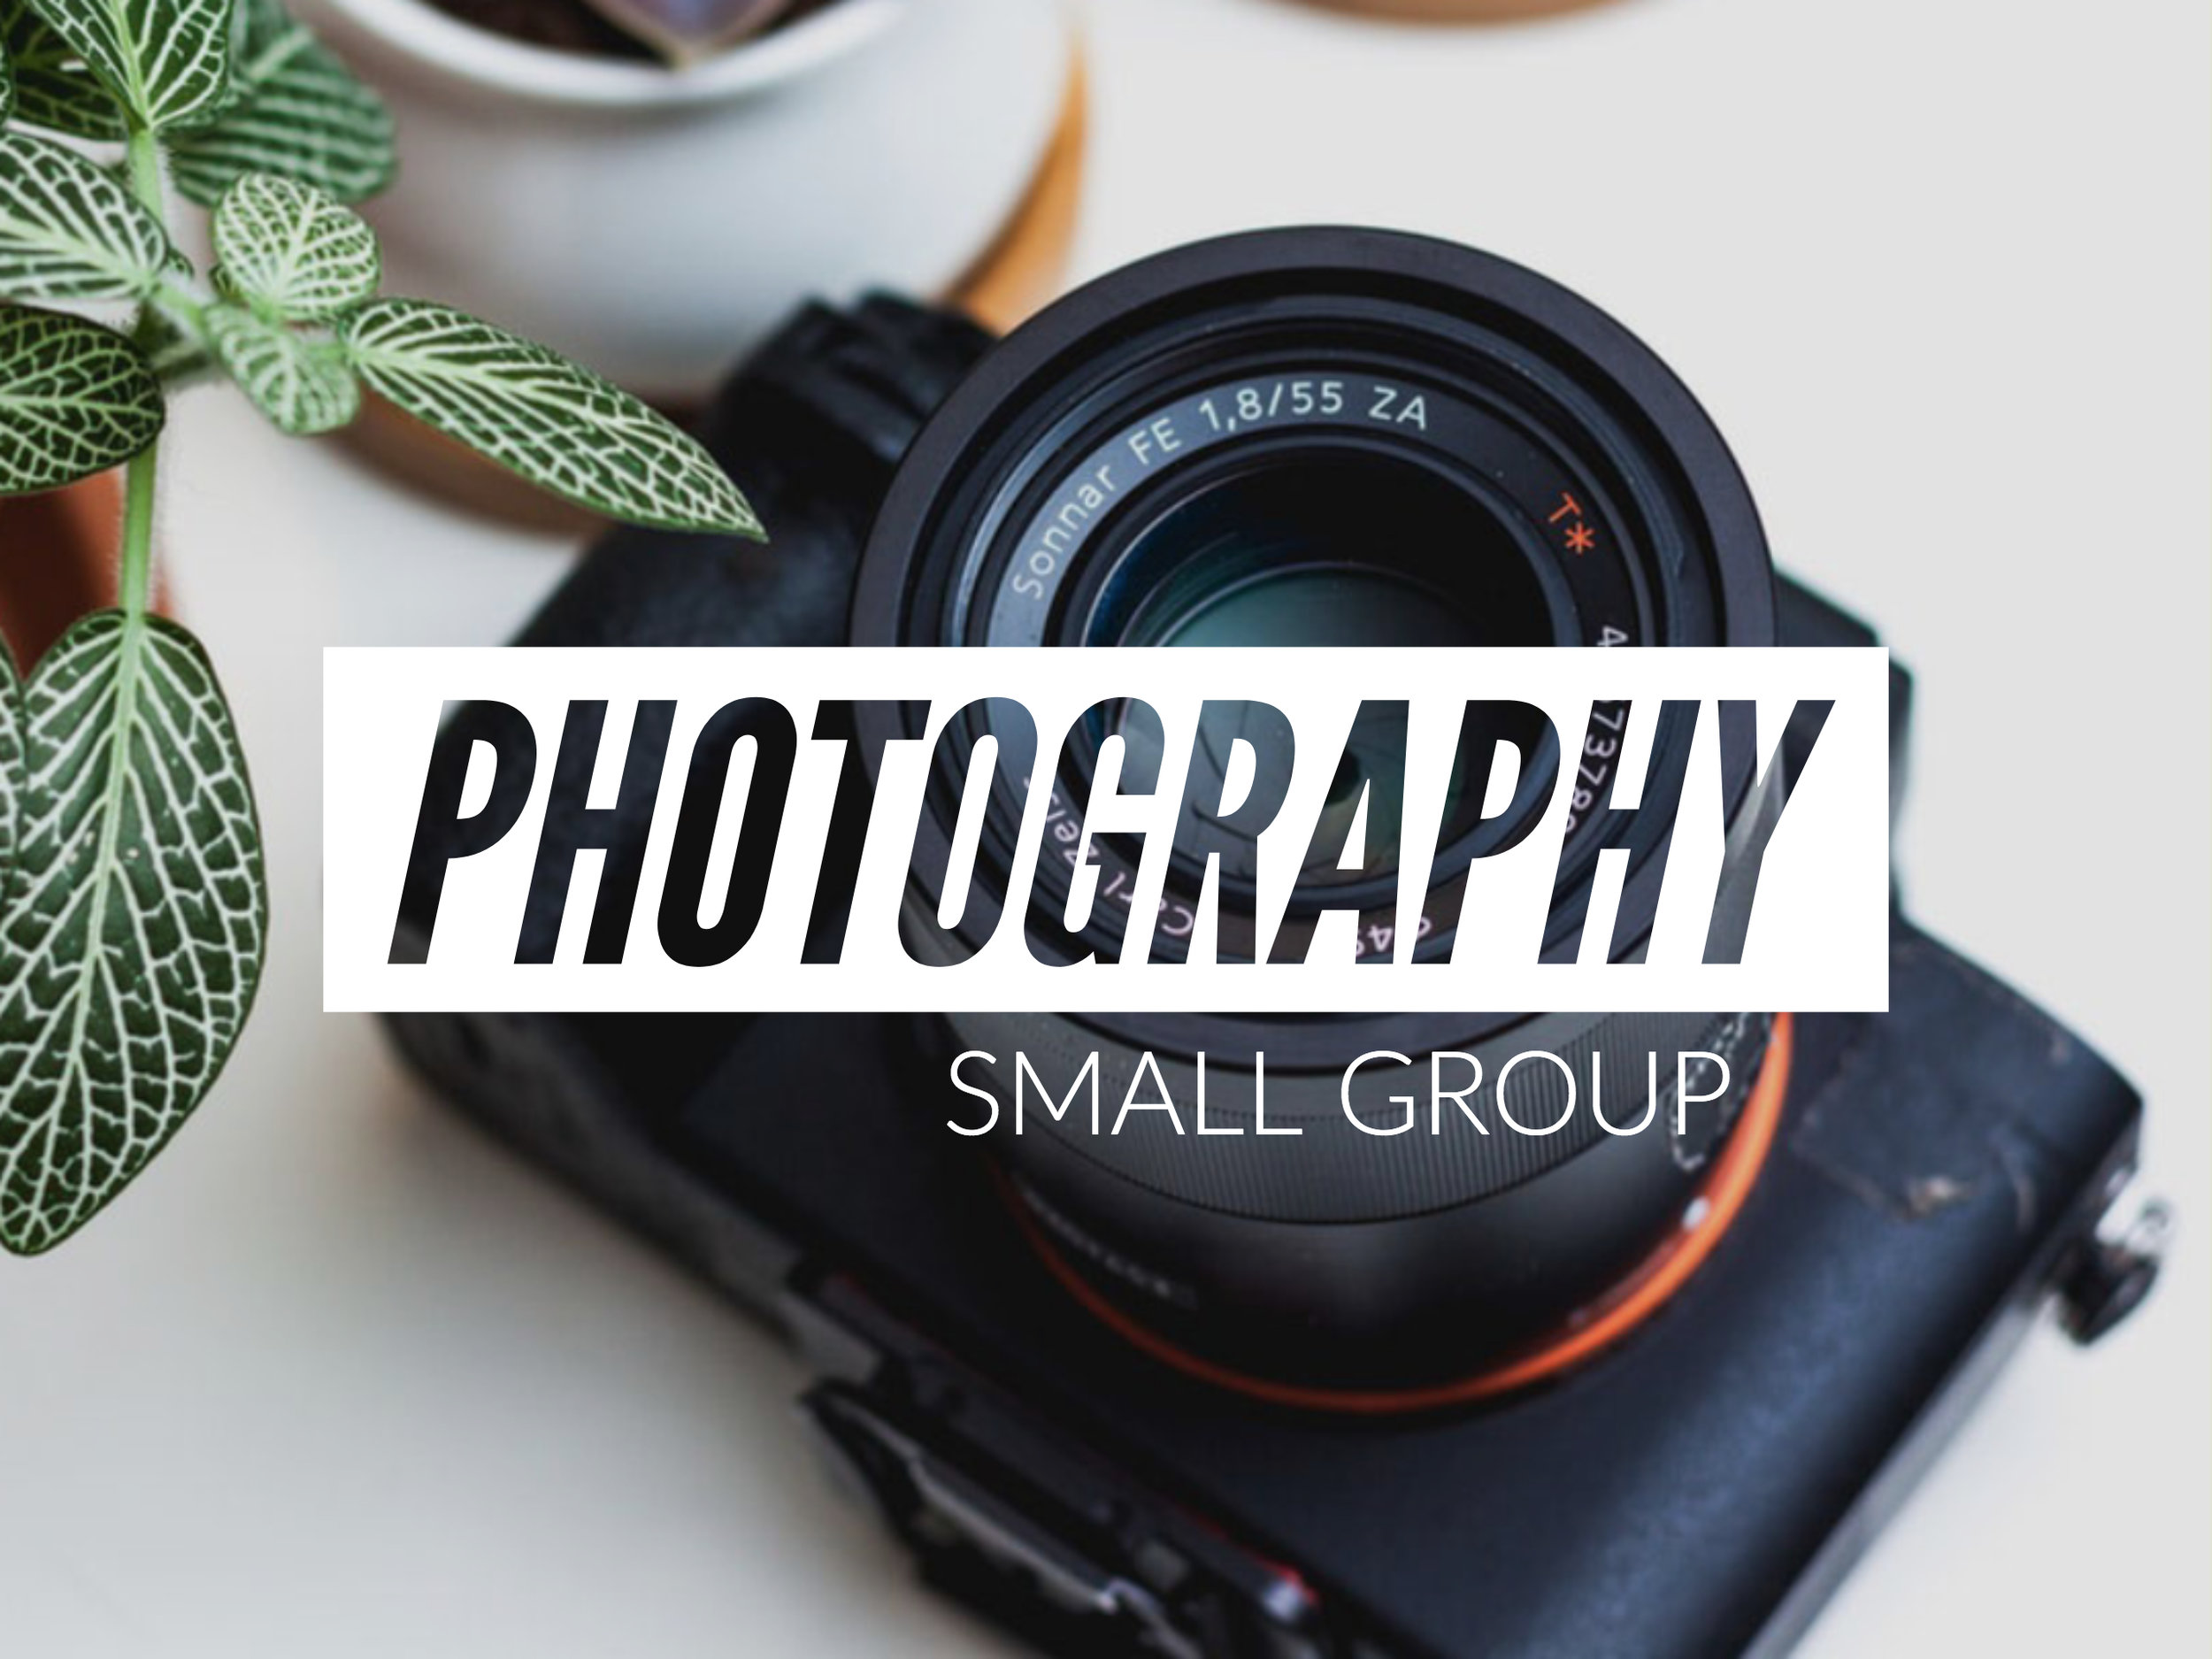 Photography Small Group at The Anchor Church